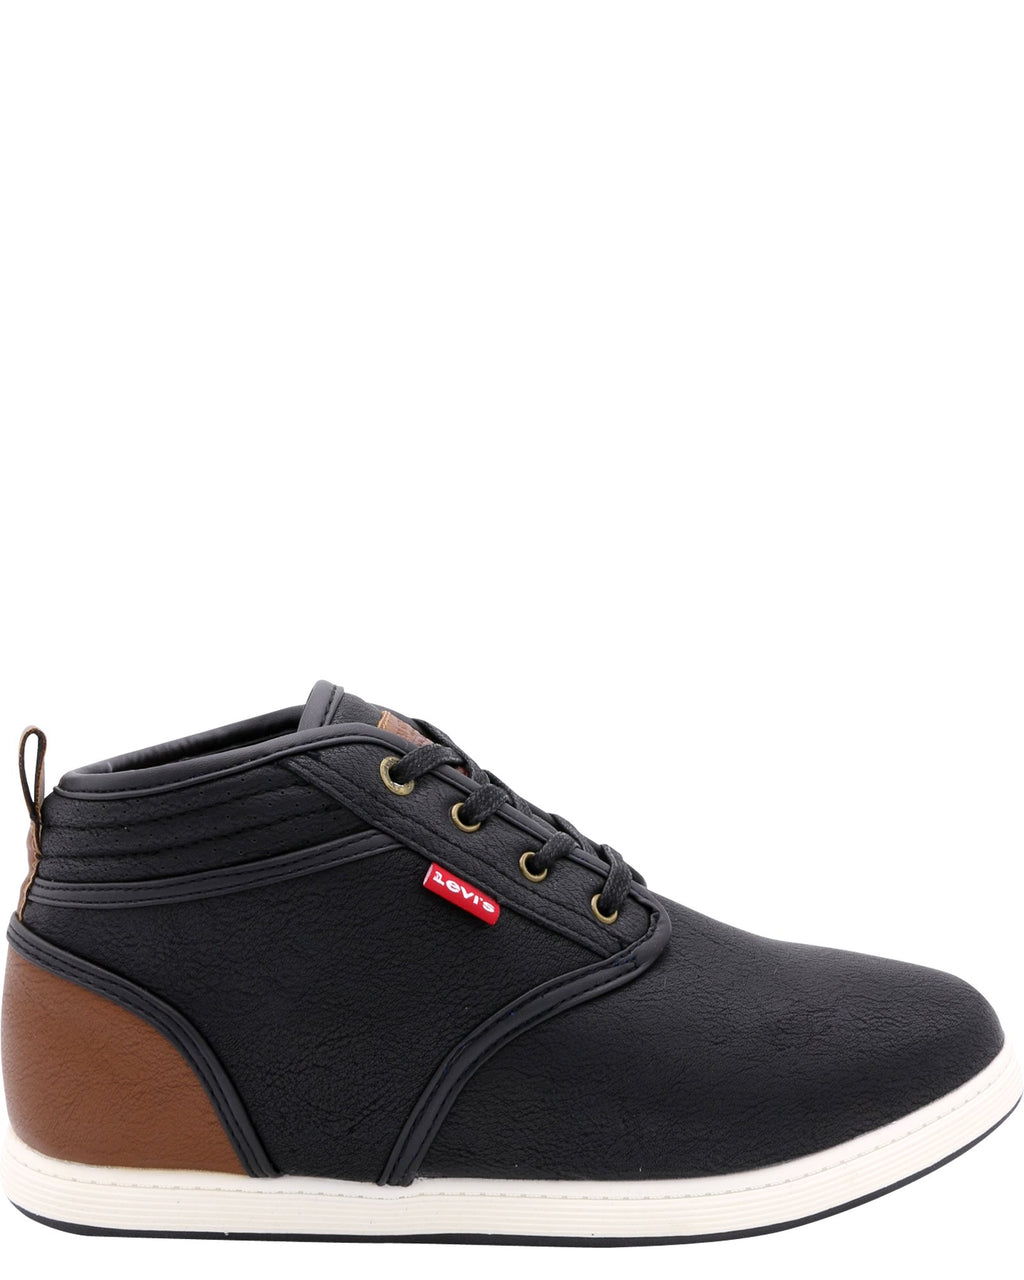 Levi's - Boy's Bishop Cacti Chukka Sneakers (Grade School) - V.I.M. - 1